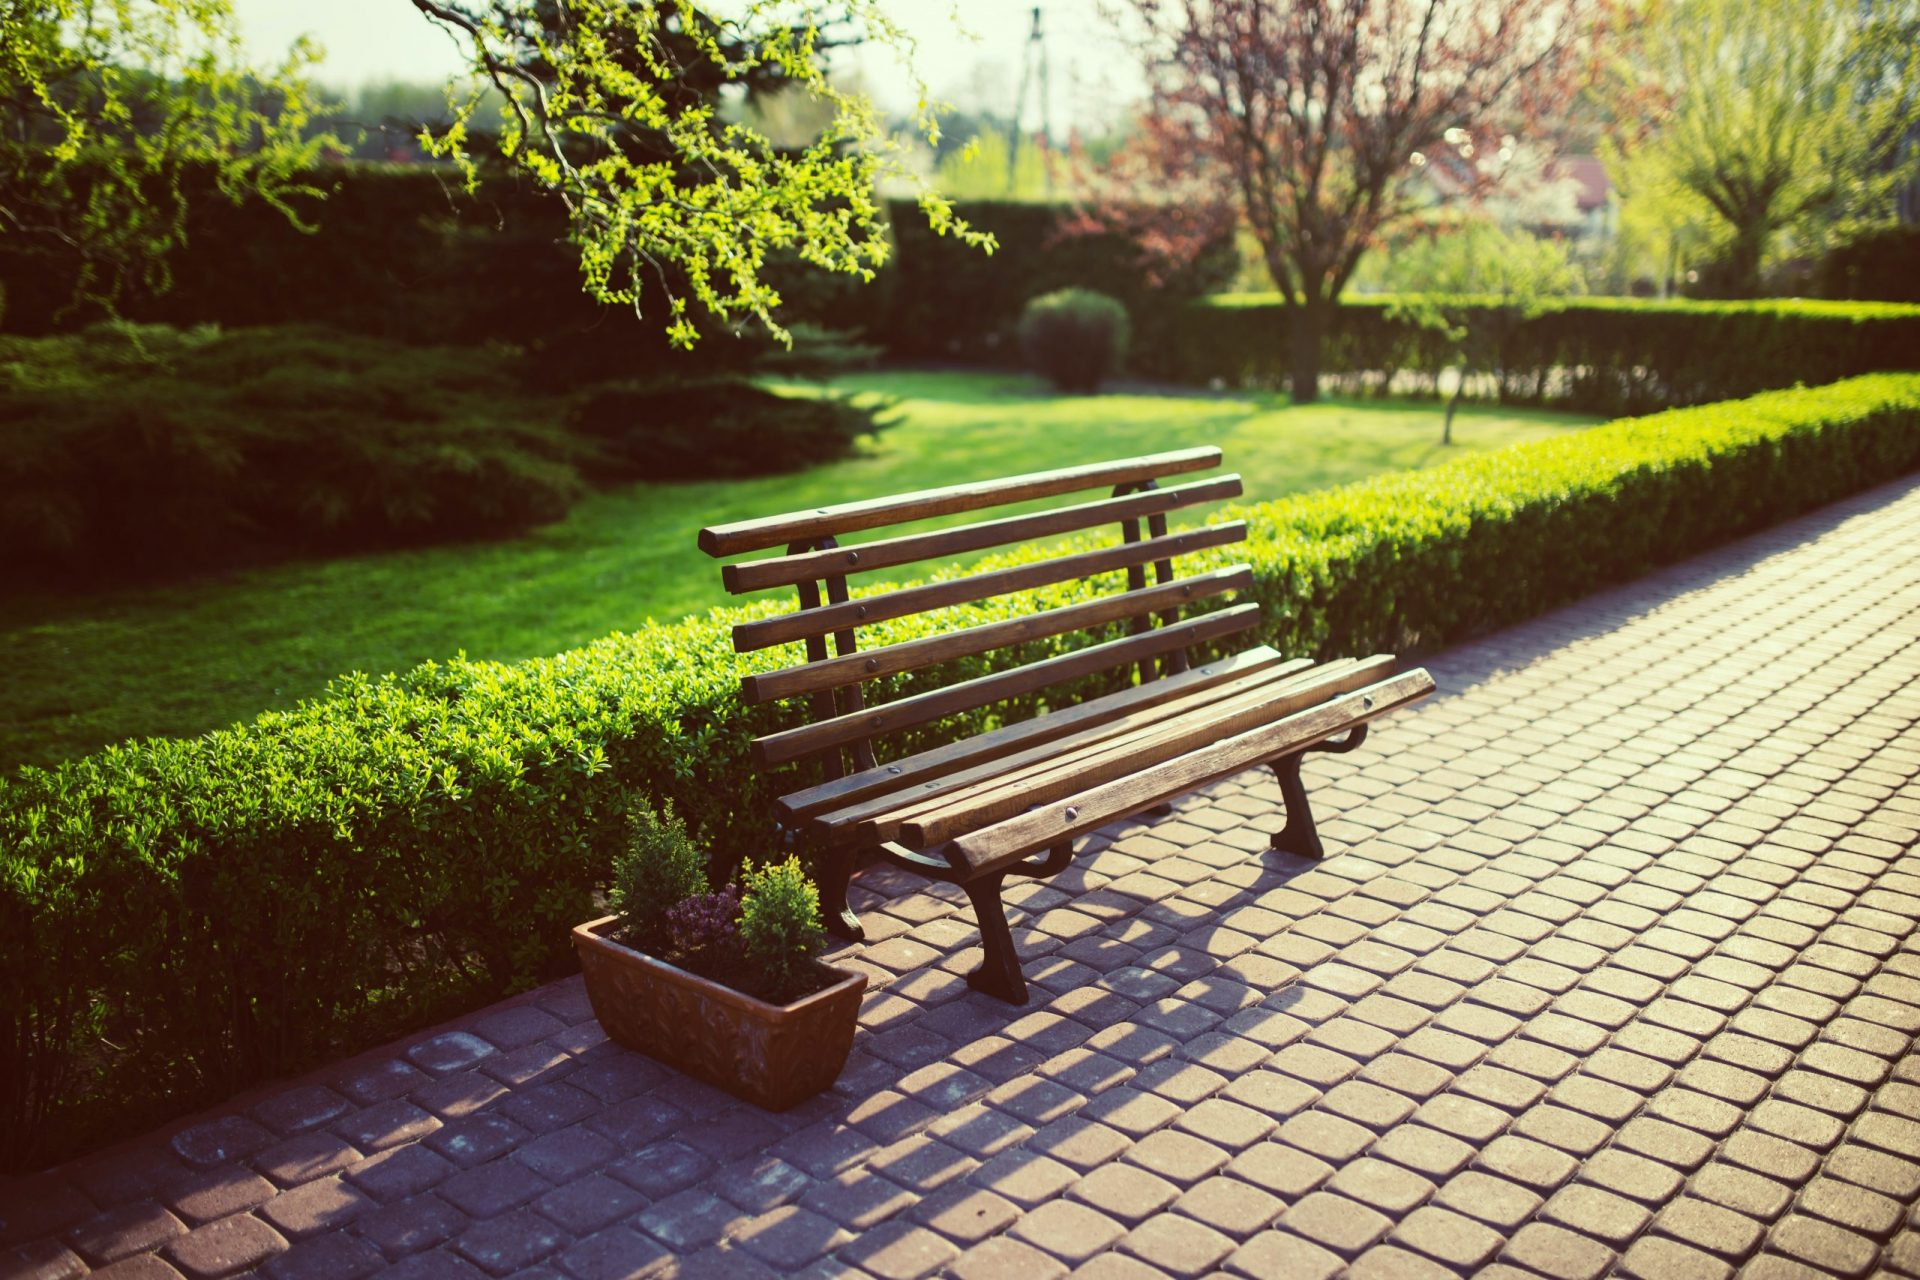 a bench beside a garden